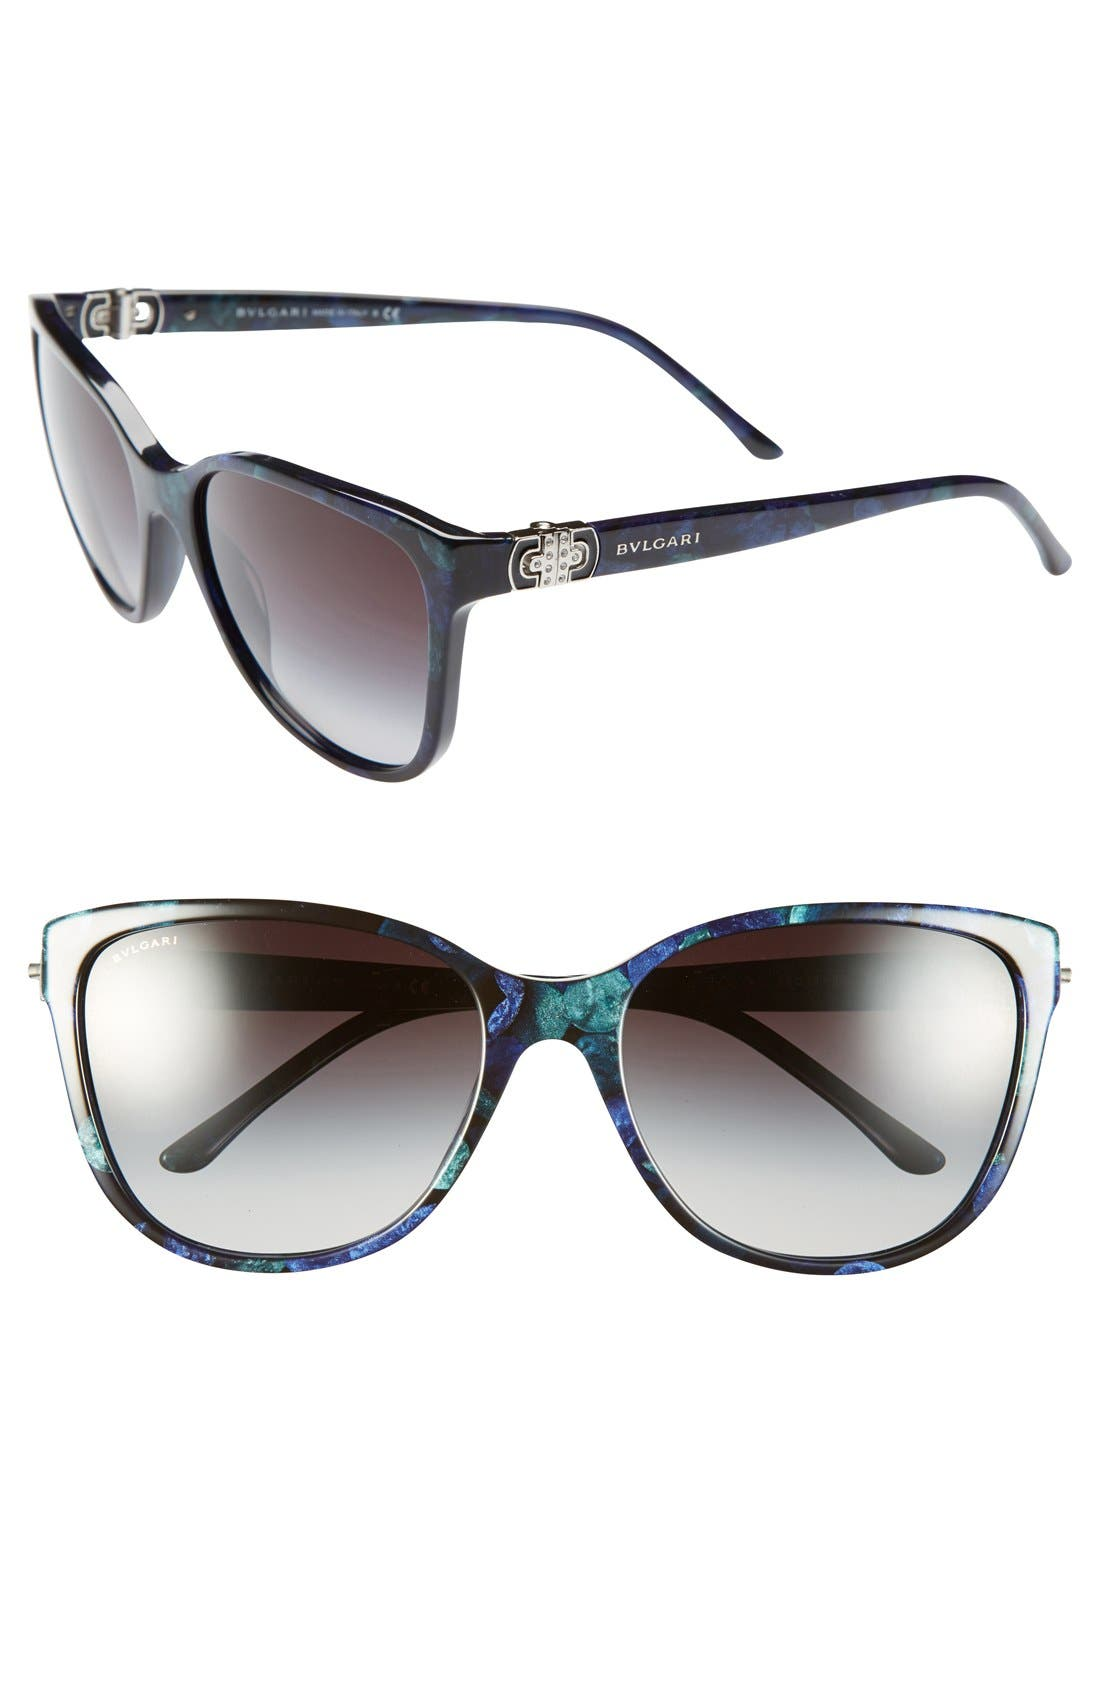 Main Image - BVLGARI 58mm Oversized Sunglasses